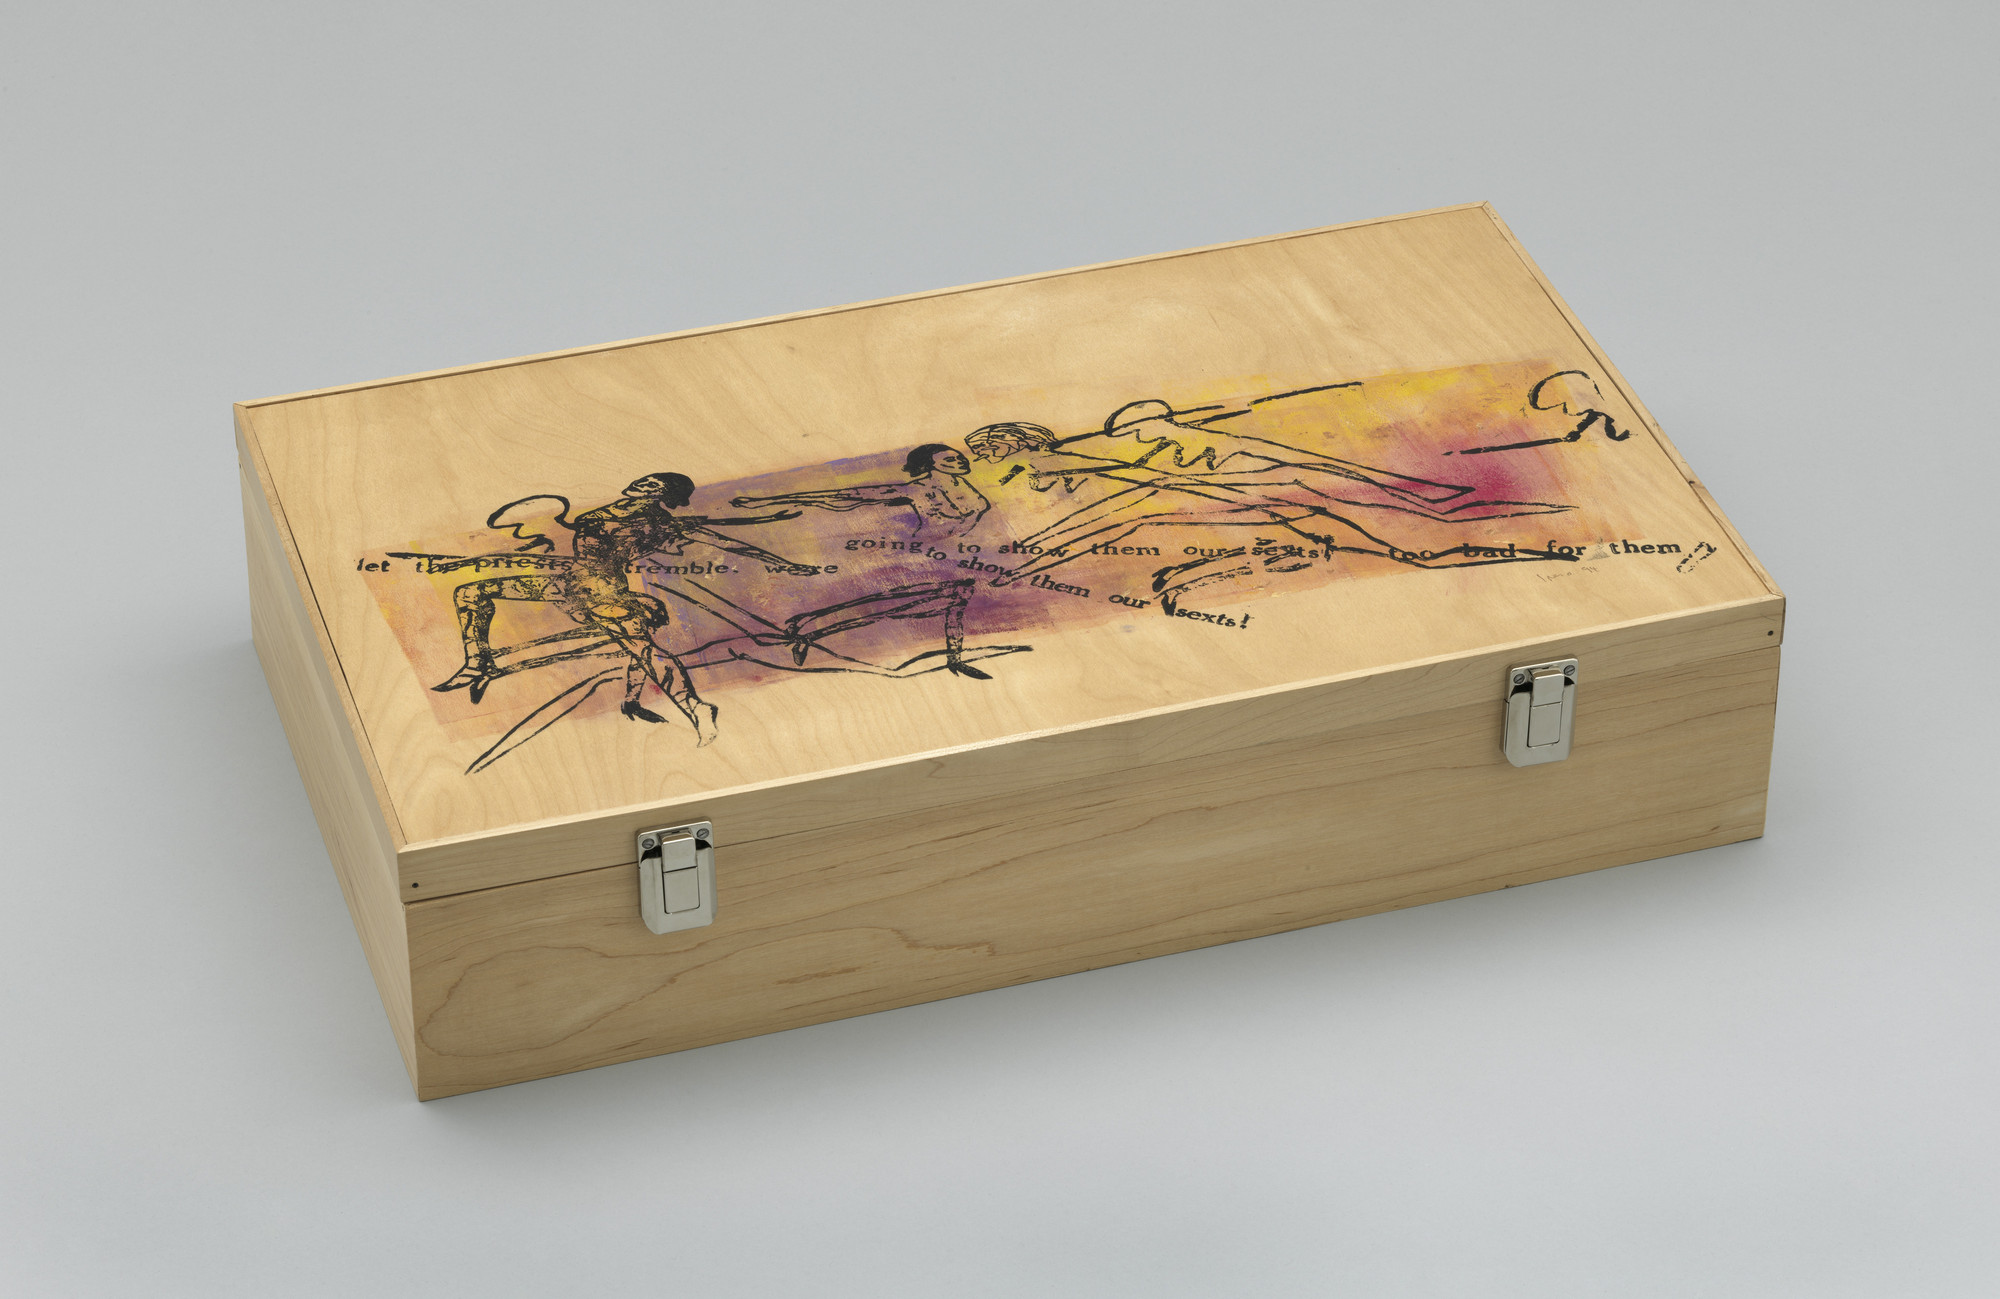 Various Artists, Nancy Spero, Ross Bleckner, Mike Kelley, Simon Leung, Louise Bourgeois, Kiki Smith, Lorna Simpson. ACT UP Art Box. 1993–94, published 1994